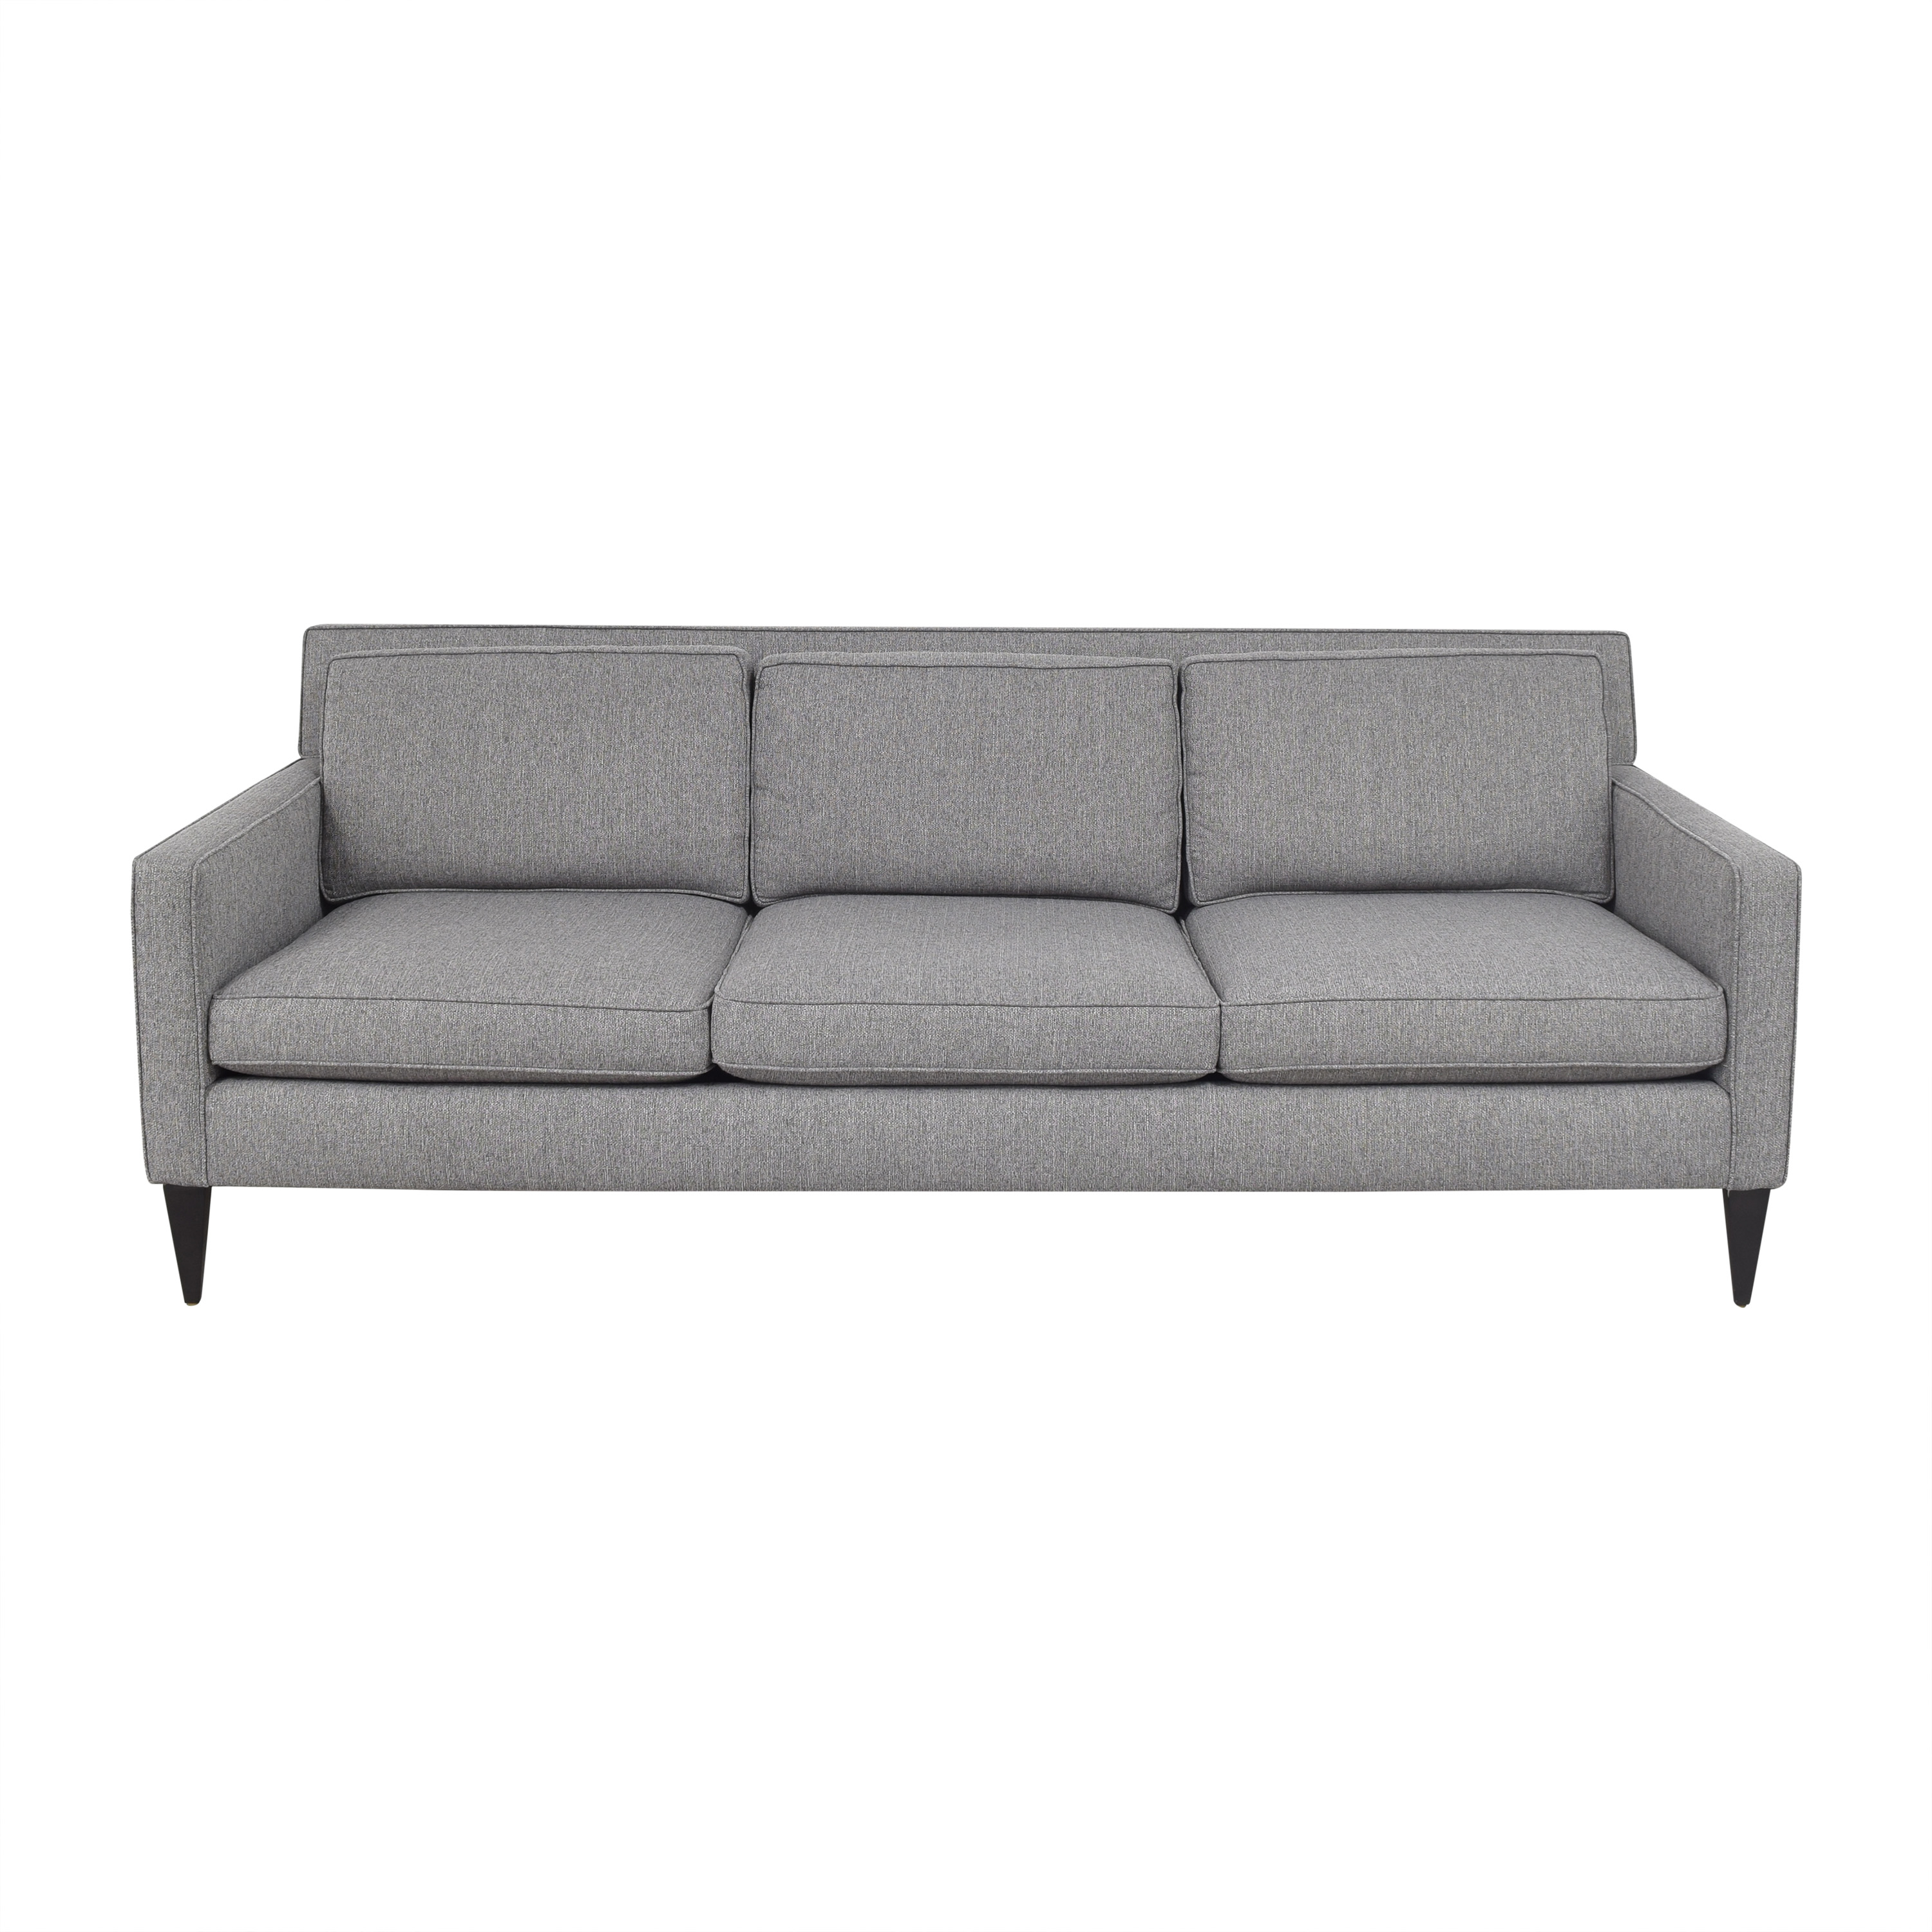 Crate & Barrel Crate & Barrel Rochelle Sofa discount